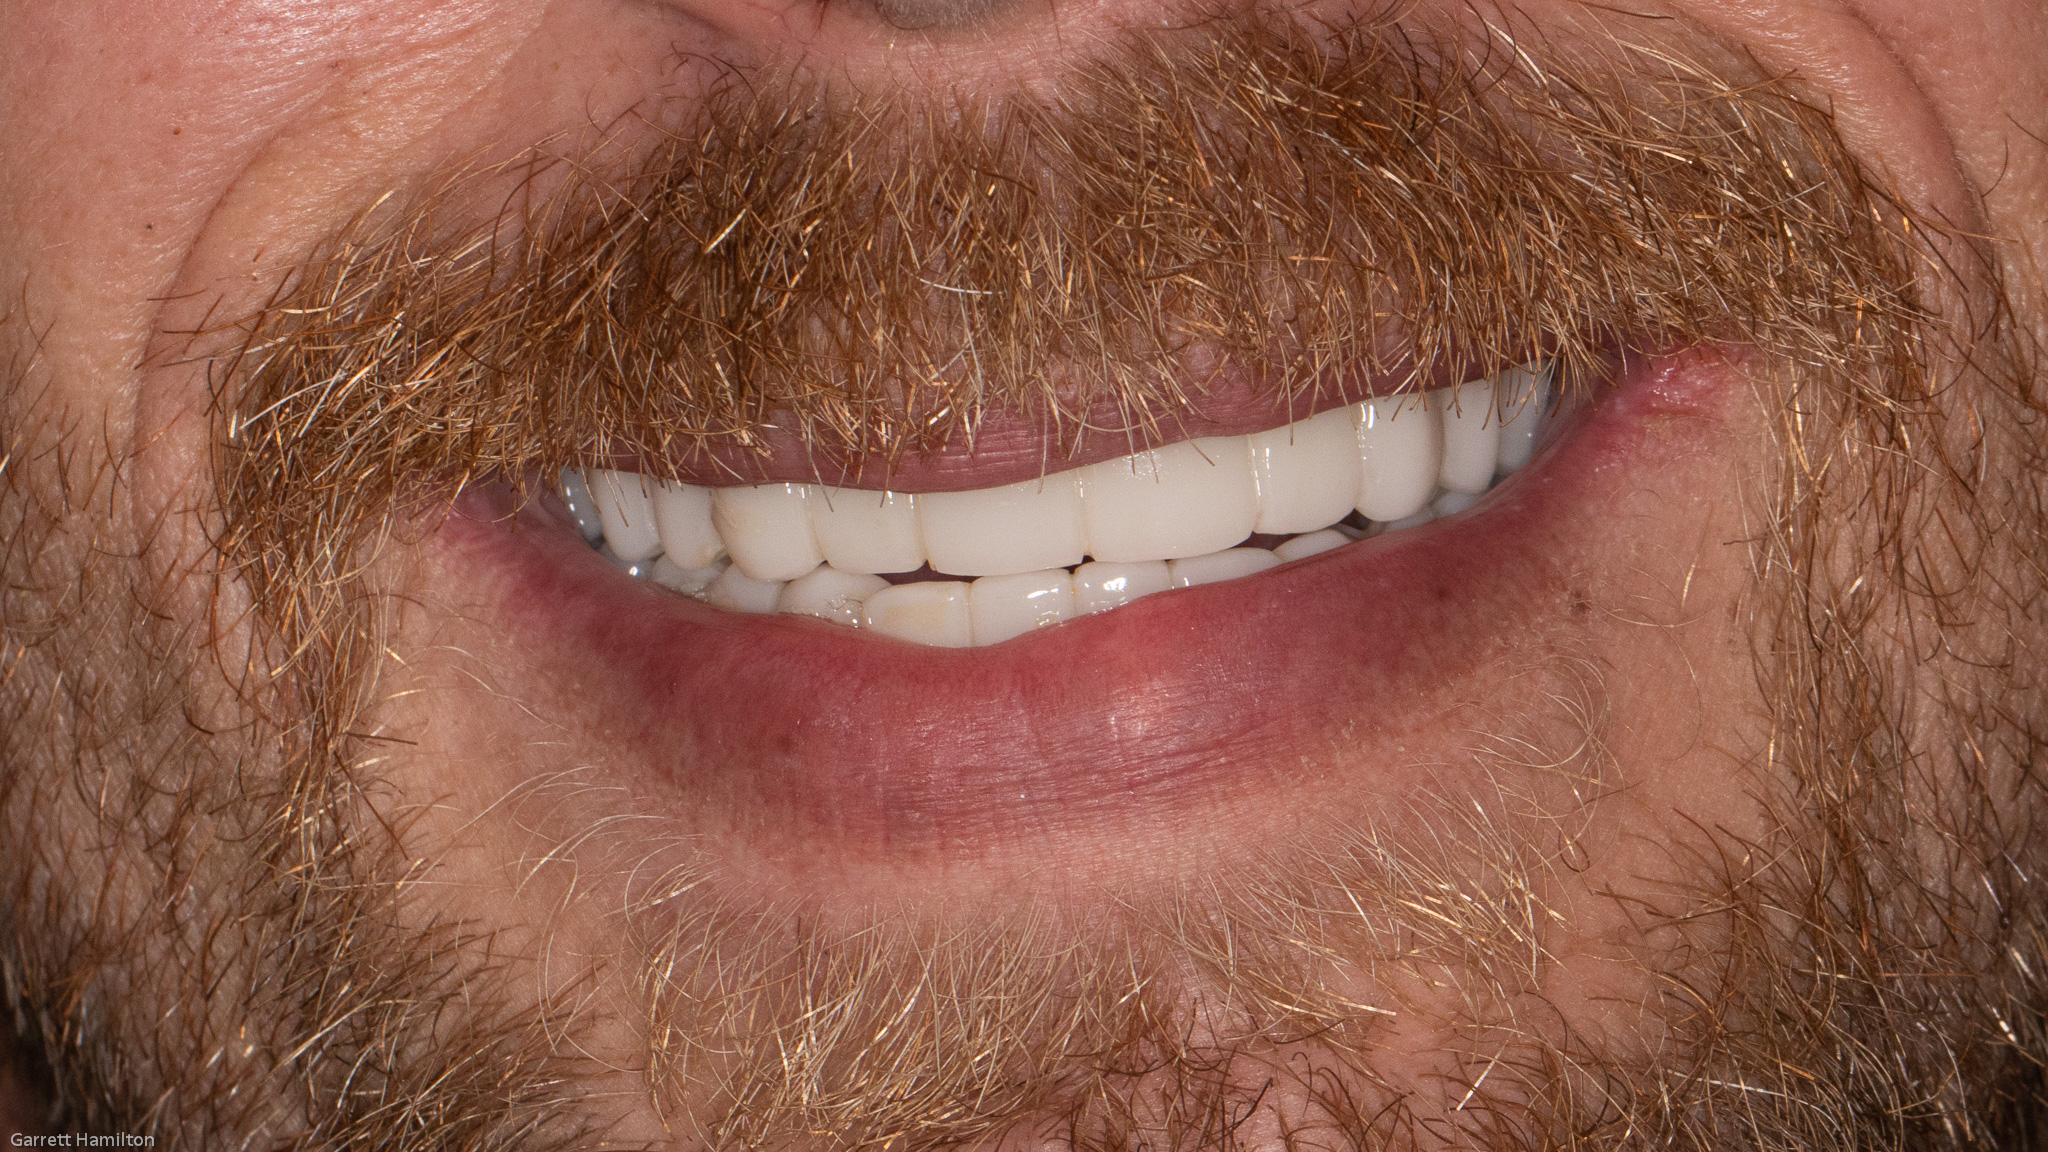 Zirconia Round House - Jefferson City Dentist - tooth filling - composite tooth filling - front tooth filling, affordable dentures, affordable dentures columbia mo jefferson city dentist - columbia mo dentist - dental implants